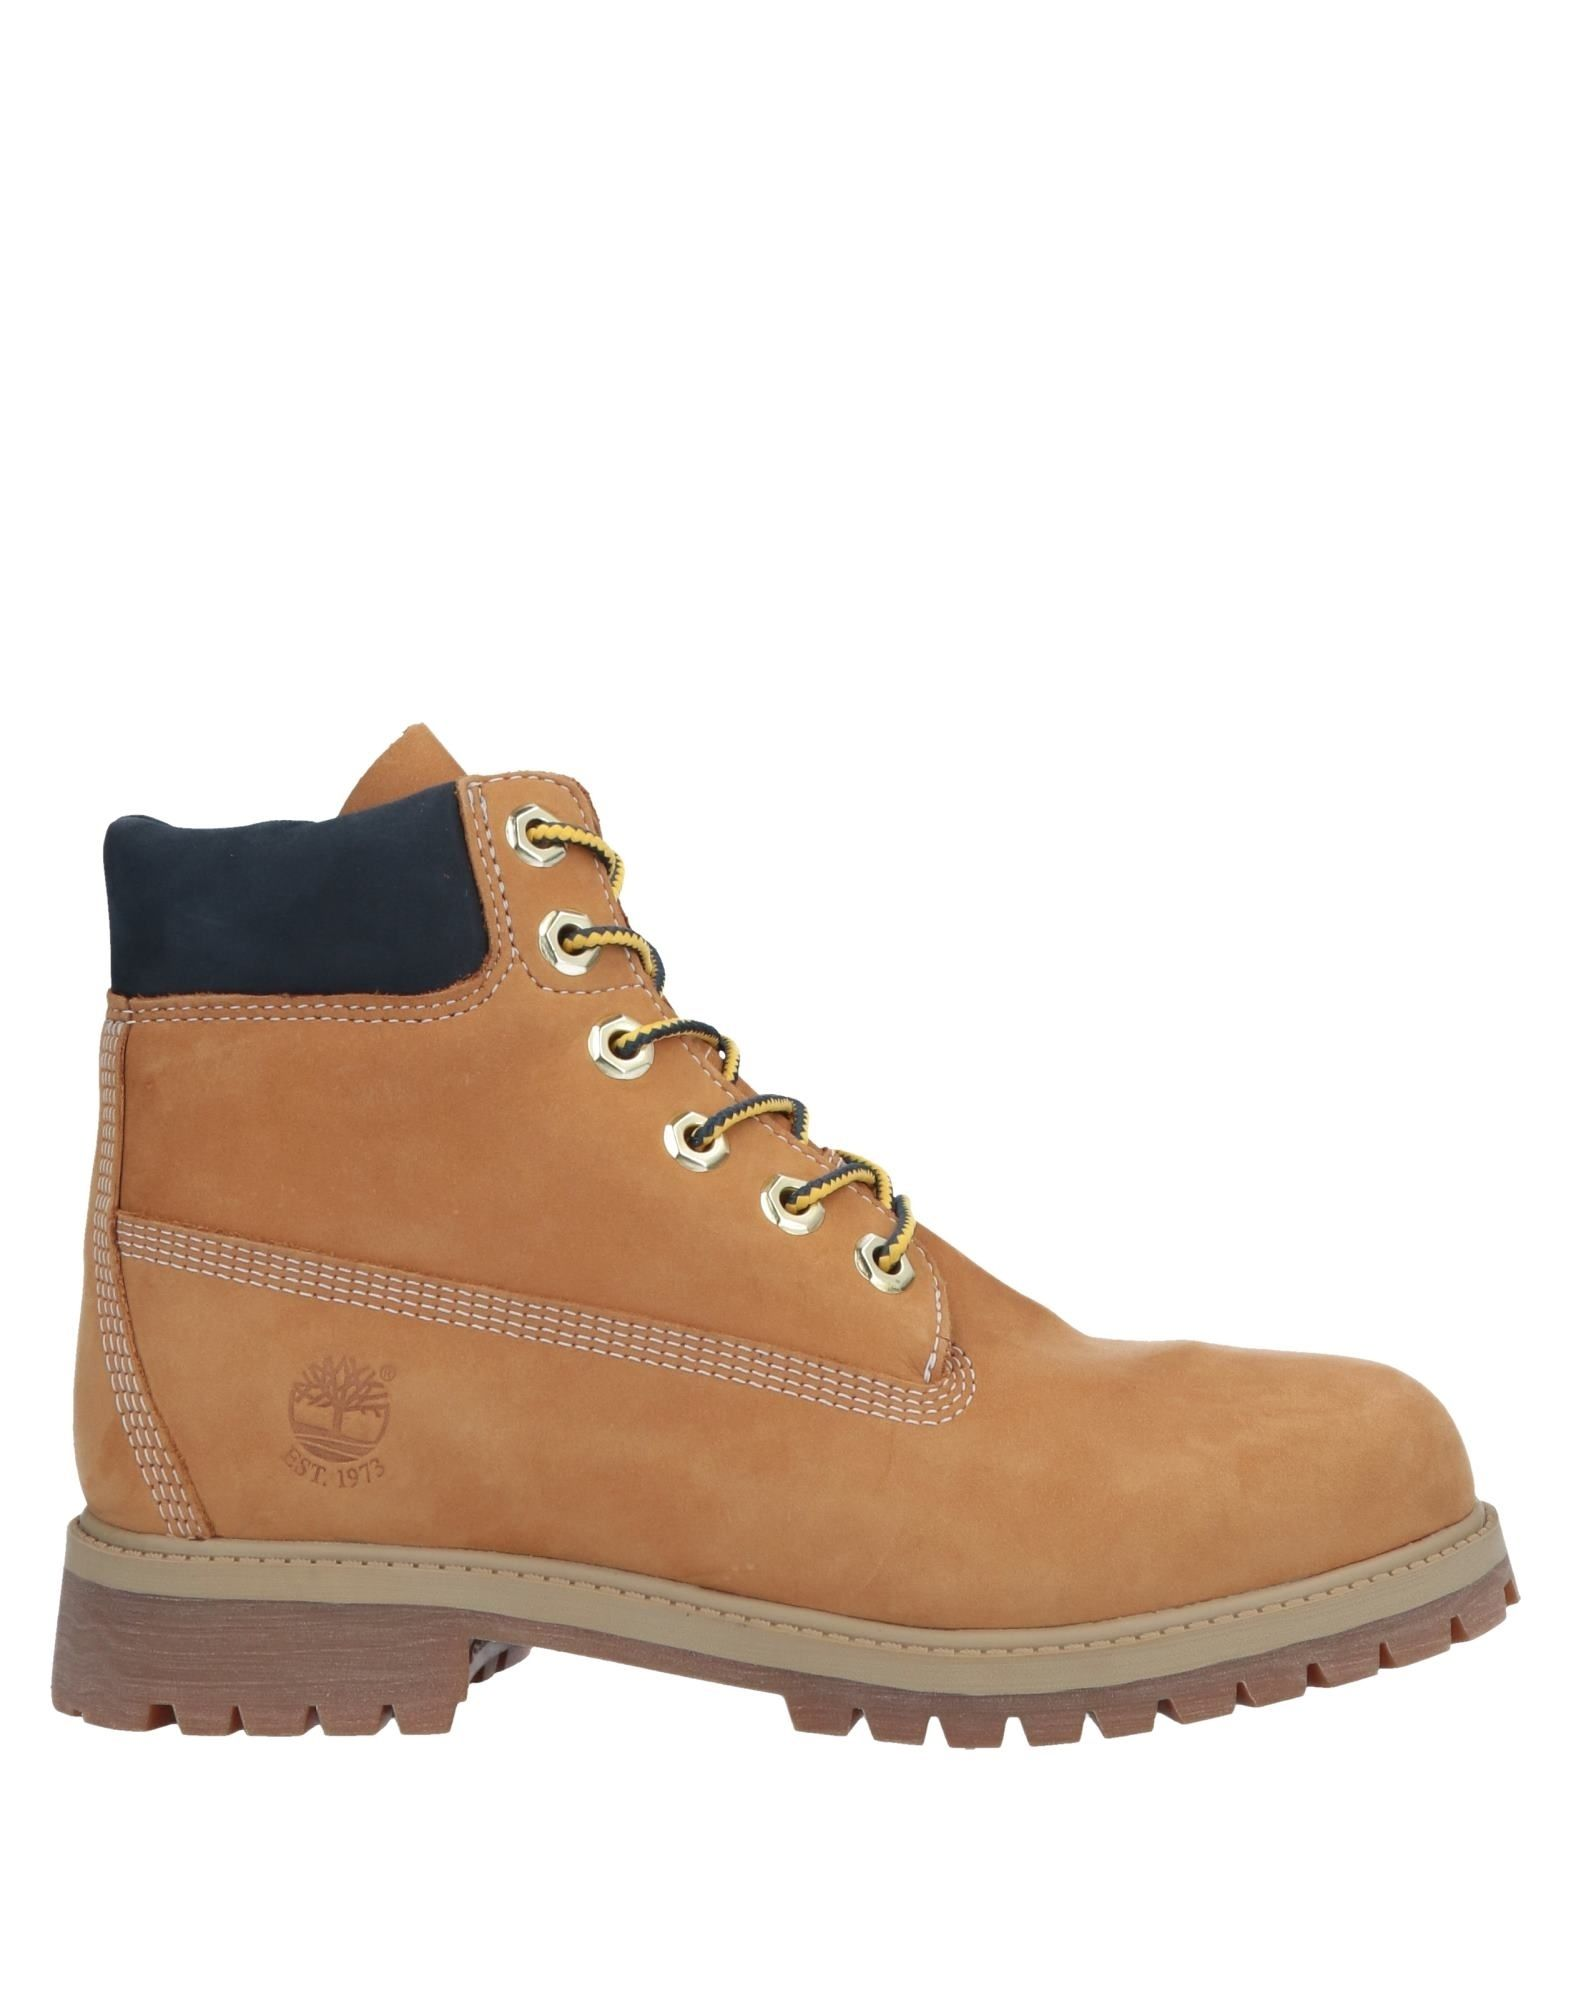 Timberland - Footwear - Ankle Boots - On Yoox.com